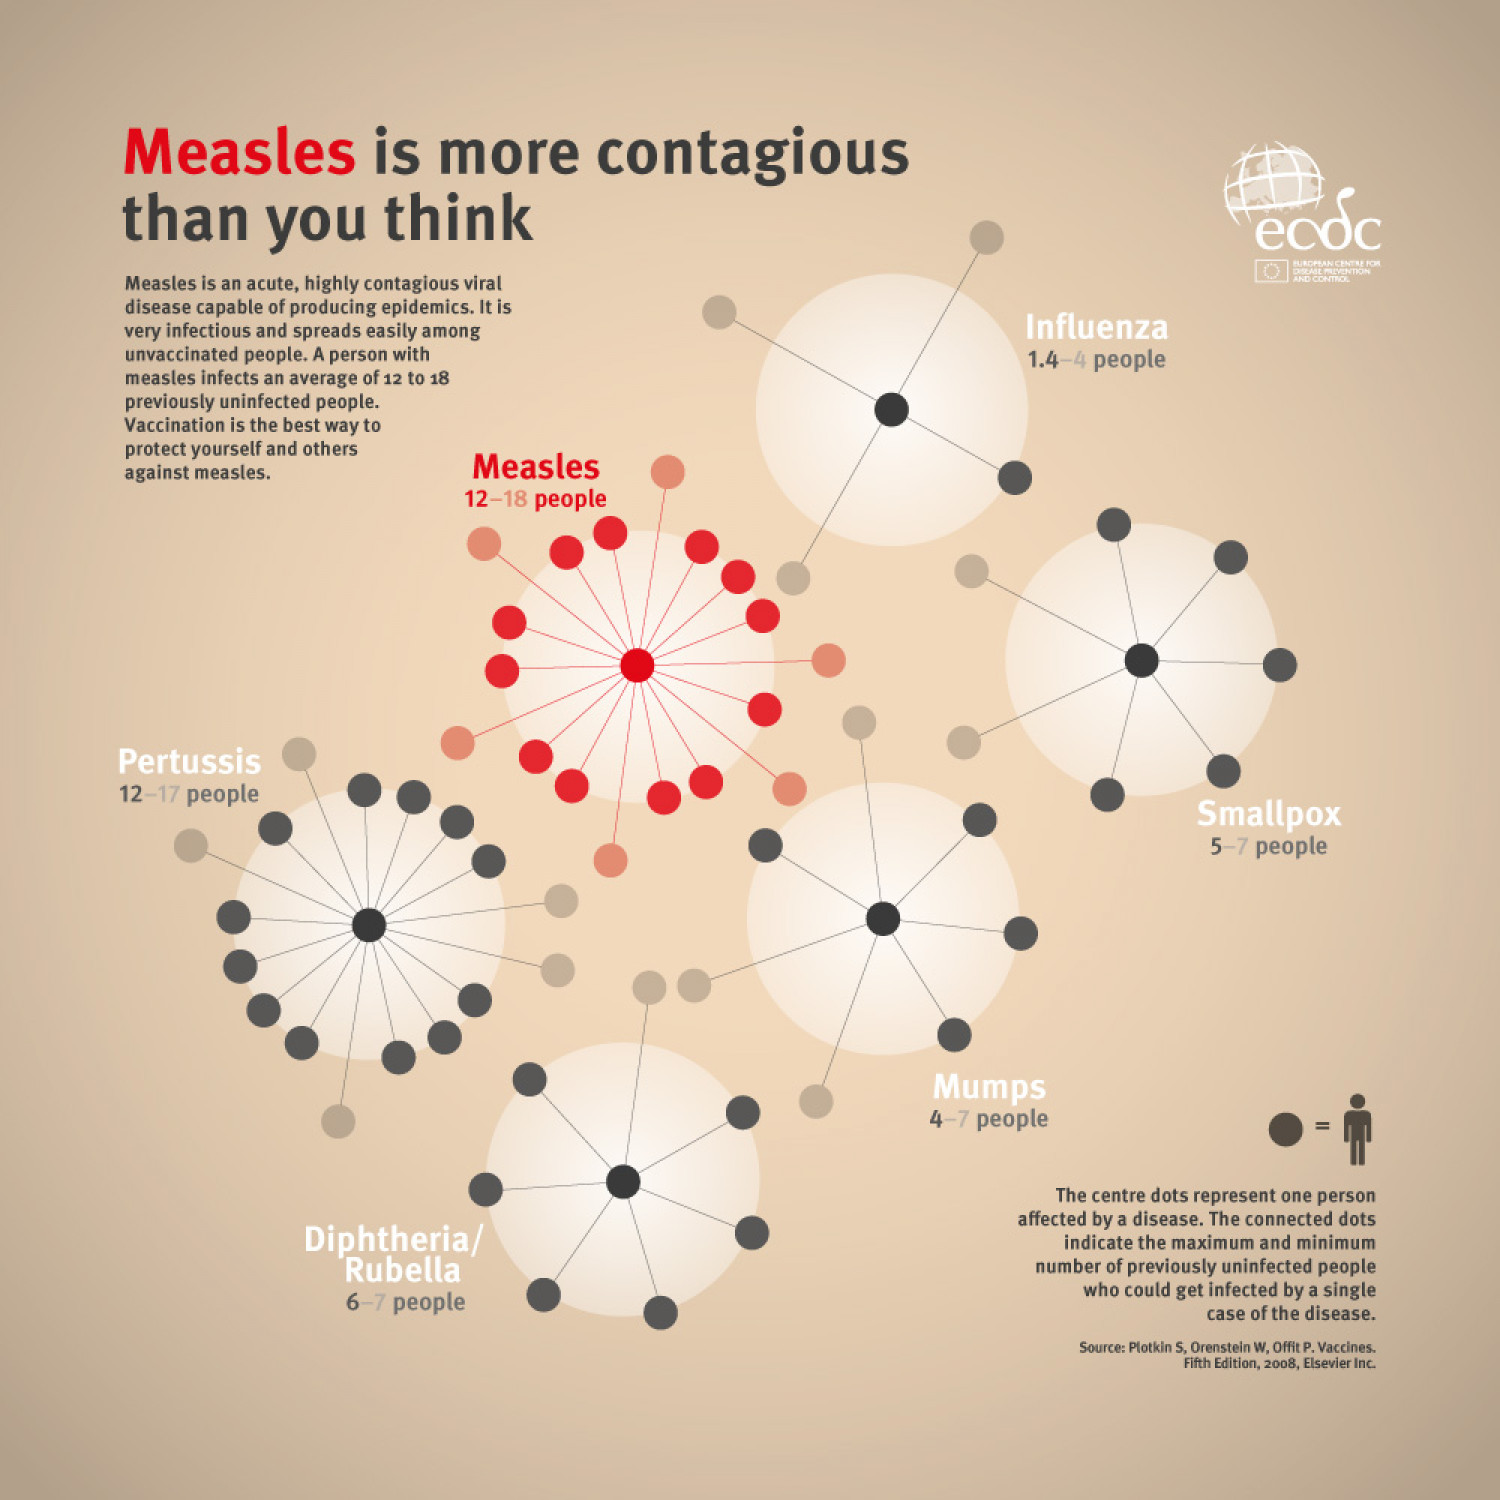 Measles is More Contagious Than You Think Infographic